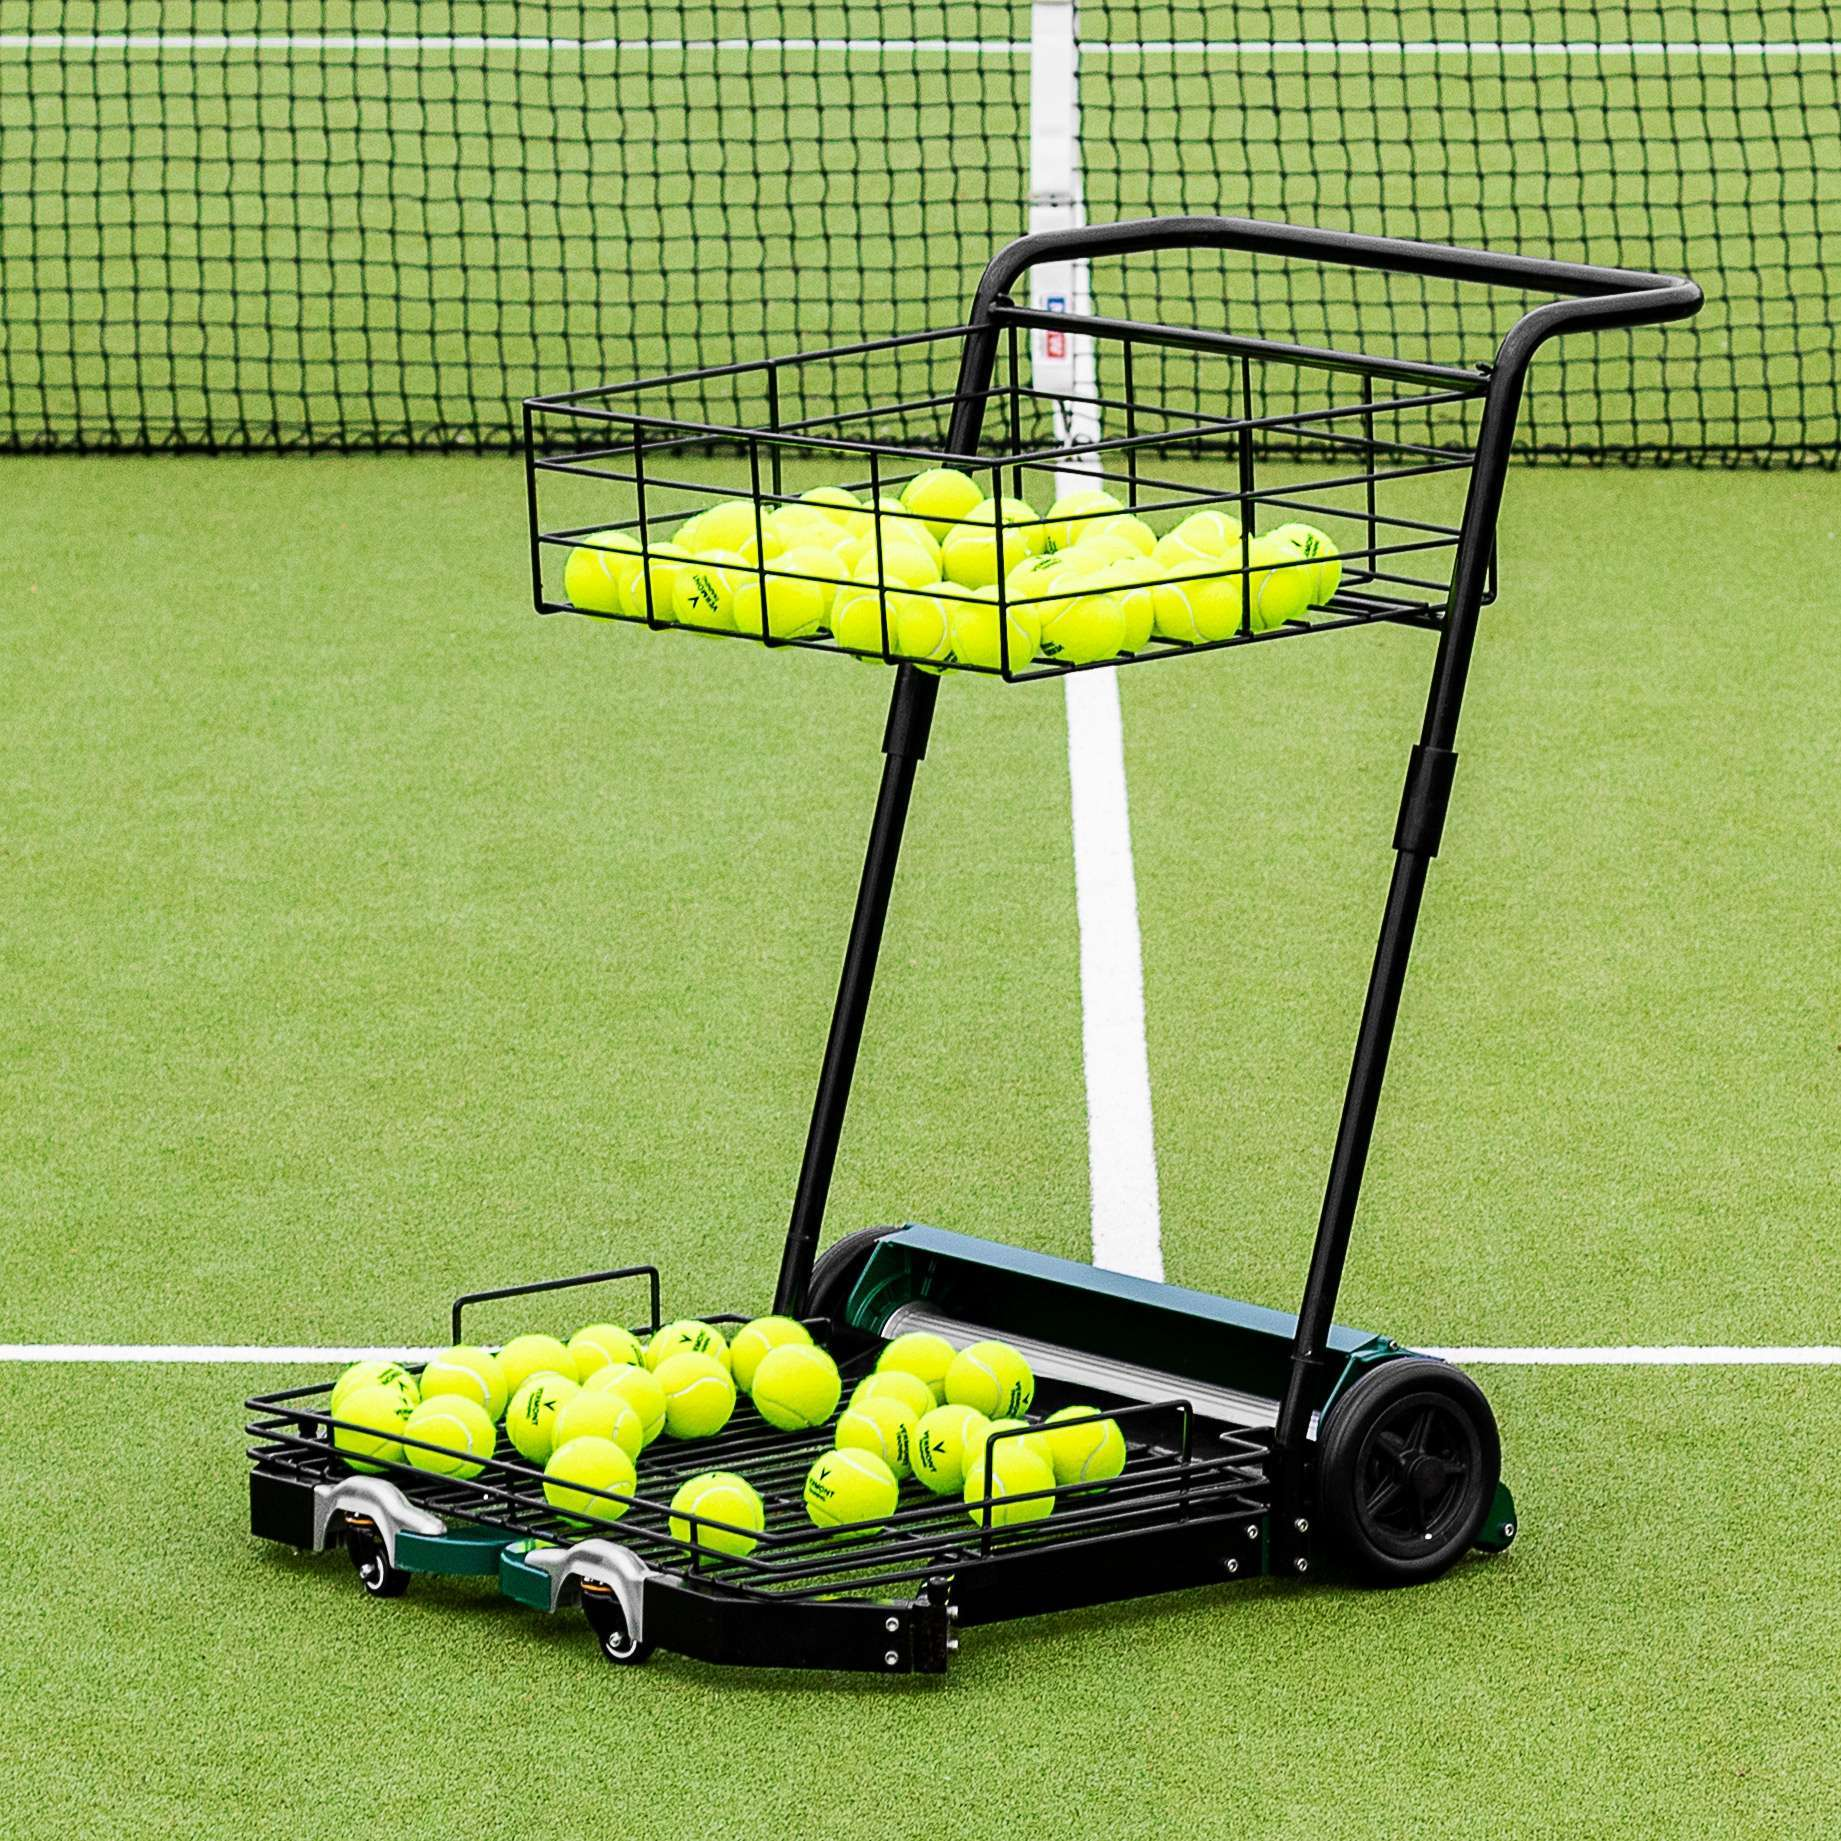 tennis ball collector with top bottom basket